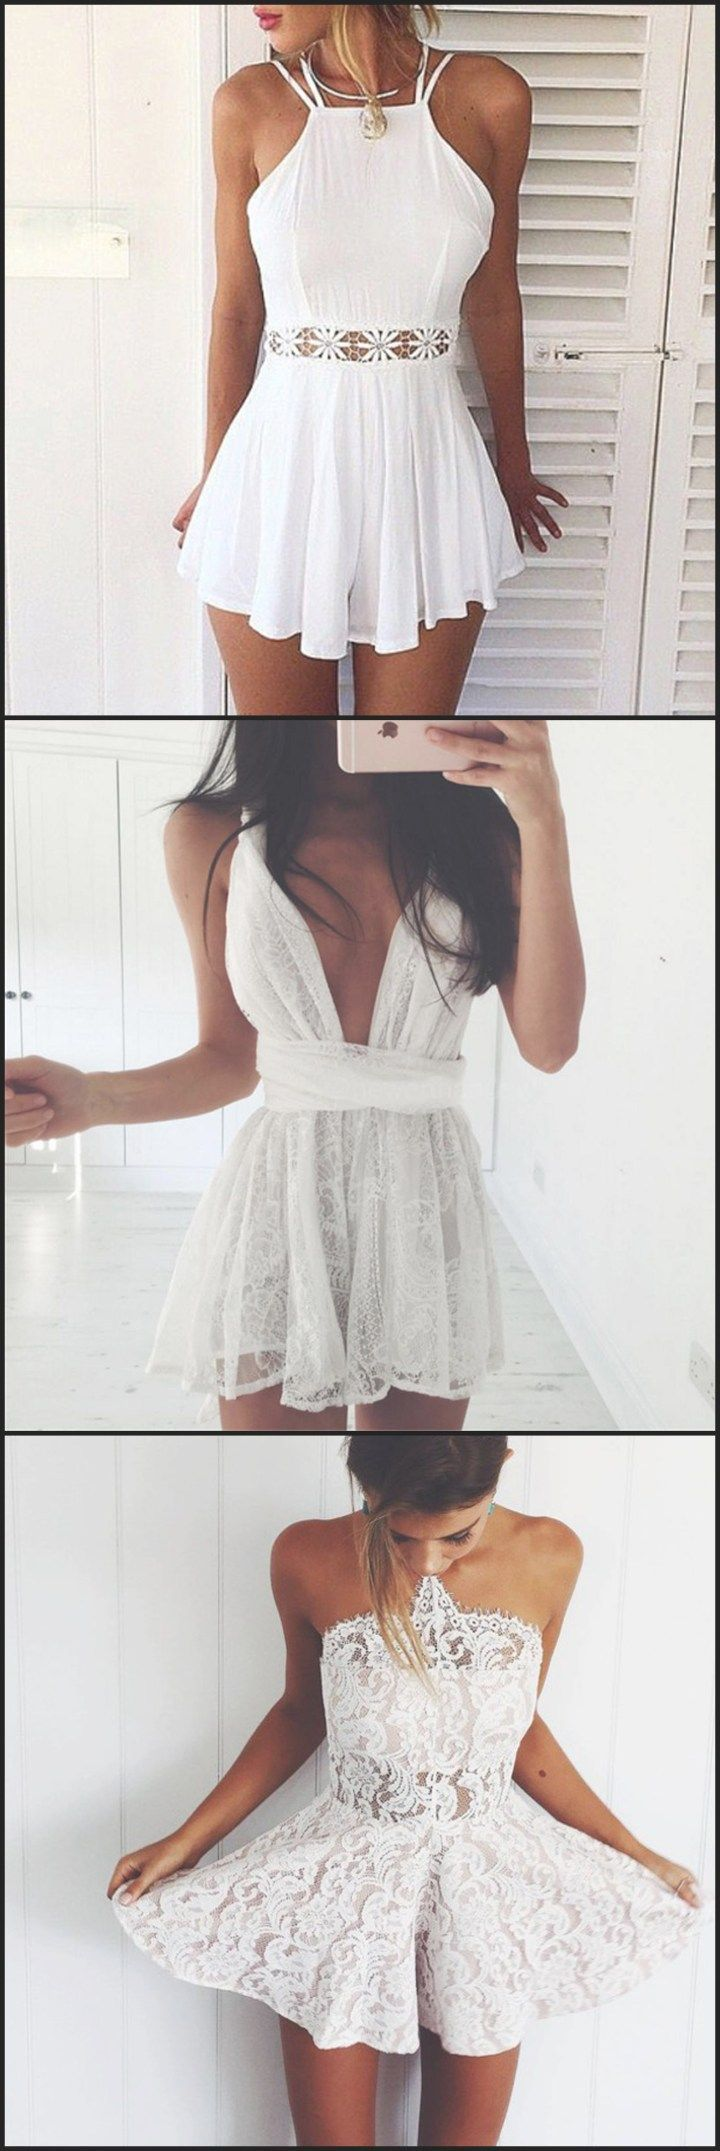 760f70bfc23f2 Romper Dress White Lace Chiffon Sleeveless Spaghetti Strap Playsuit - Cute  Summer Outfit Ideas for Teens at Brikiniz.com #cruiseoutfitsforteens # ...